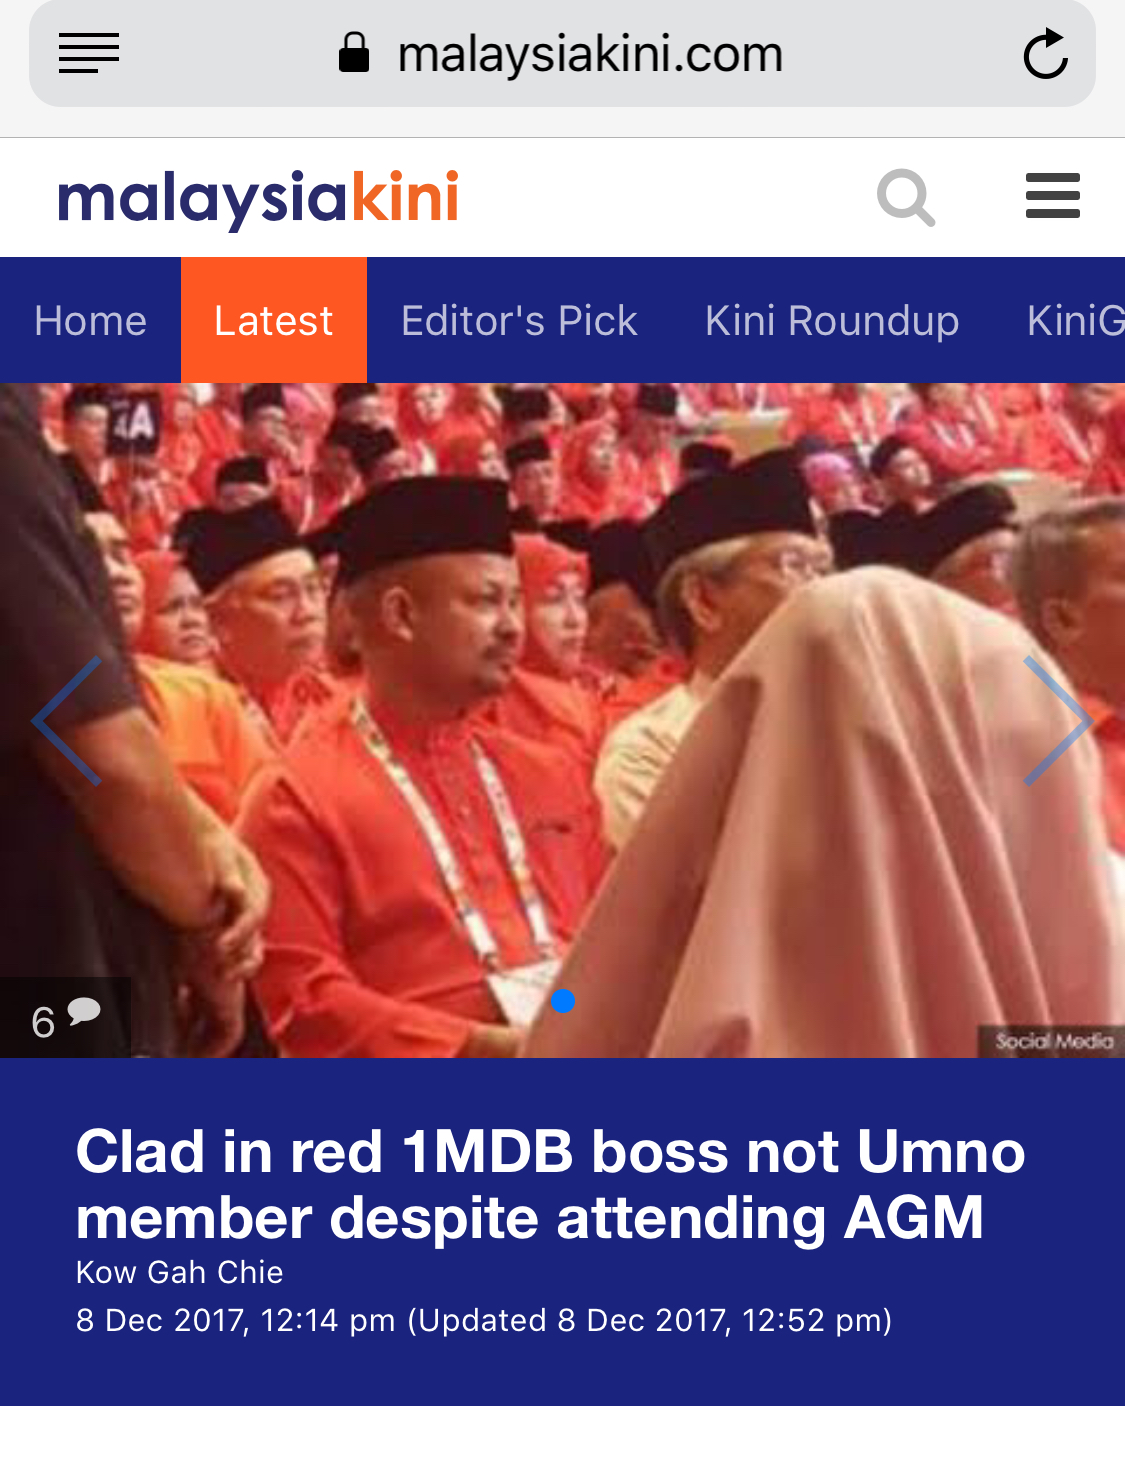 Arul Kanda was spotted at the opening of the UMNO General Assembly